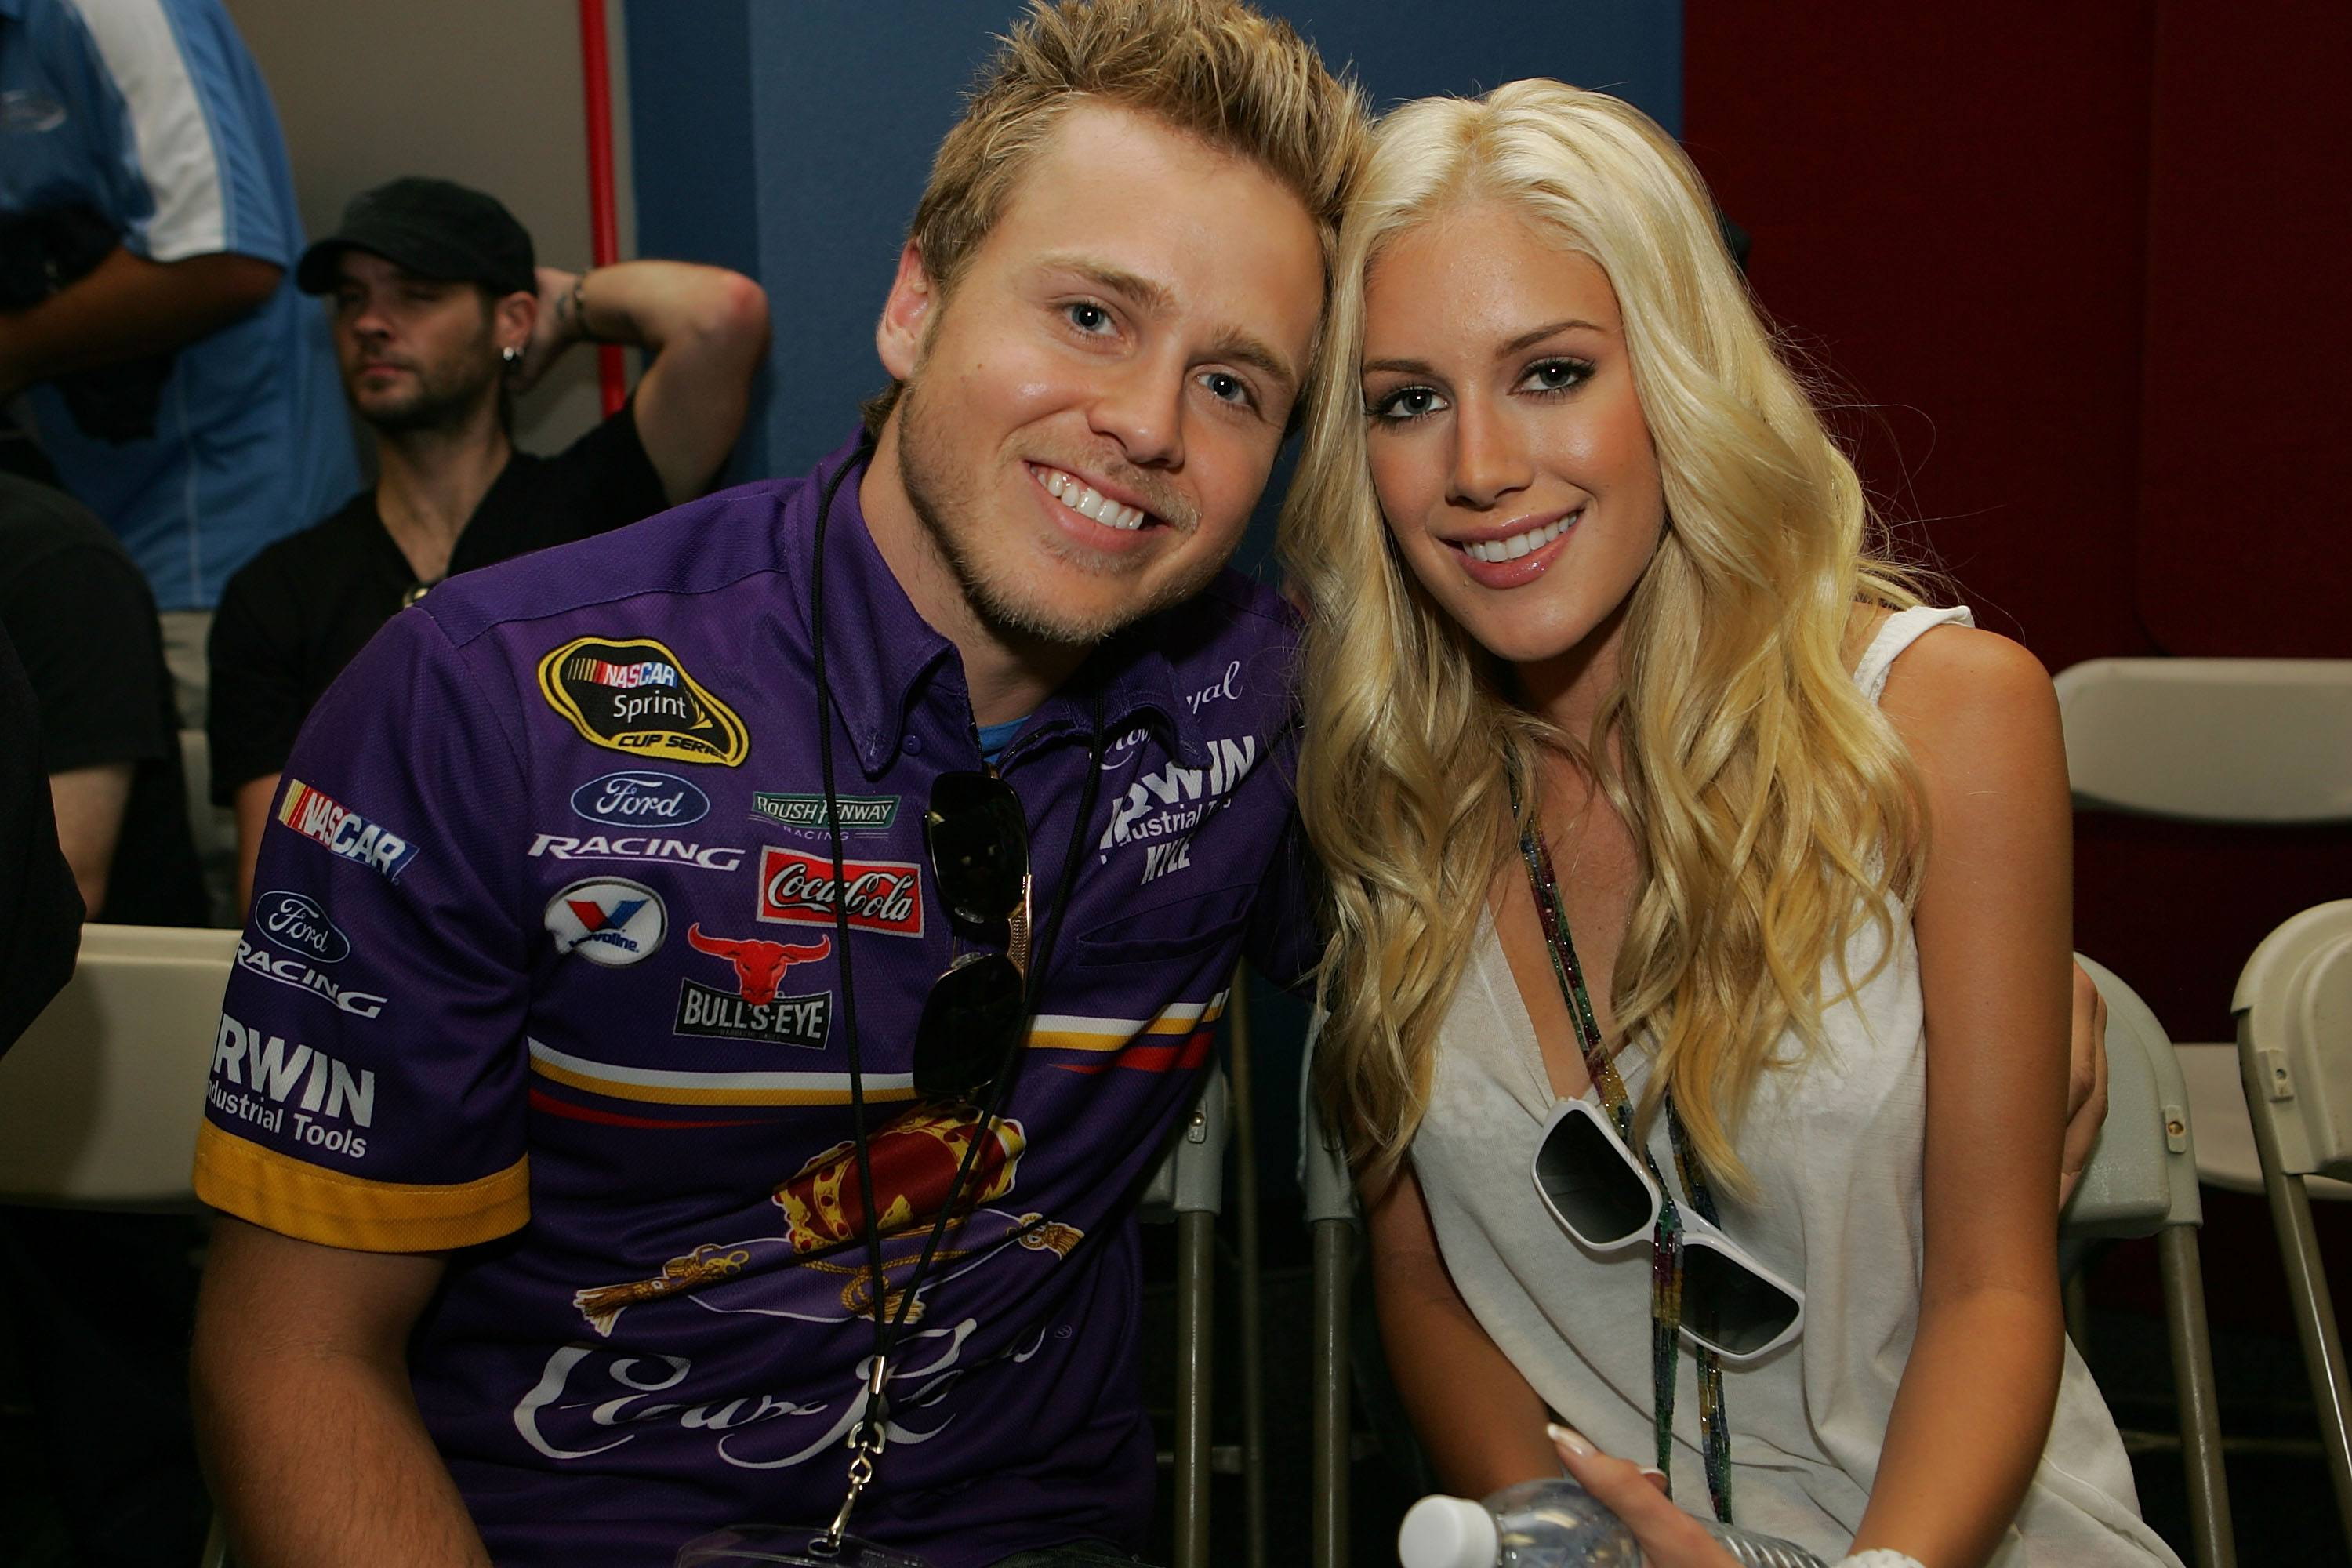 Spencer Pratt and Heidi Montag during the NASCAR Sprint Cup Series Pepsi 500 at Auto Club Speedway on August 31, 2008 in Fontana, California.